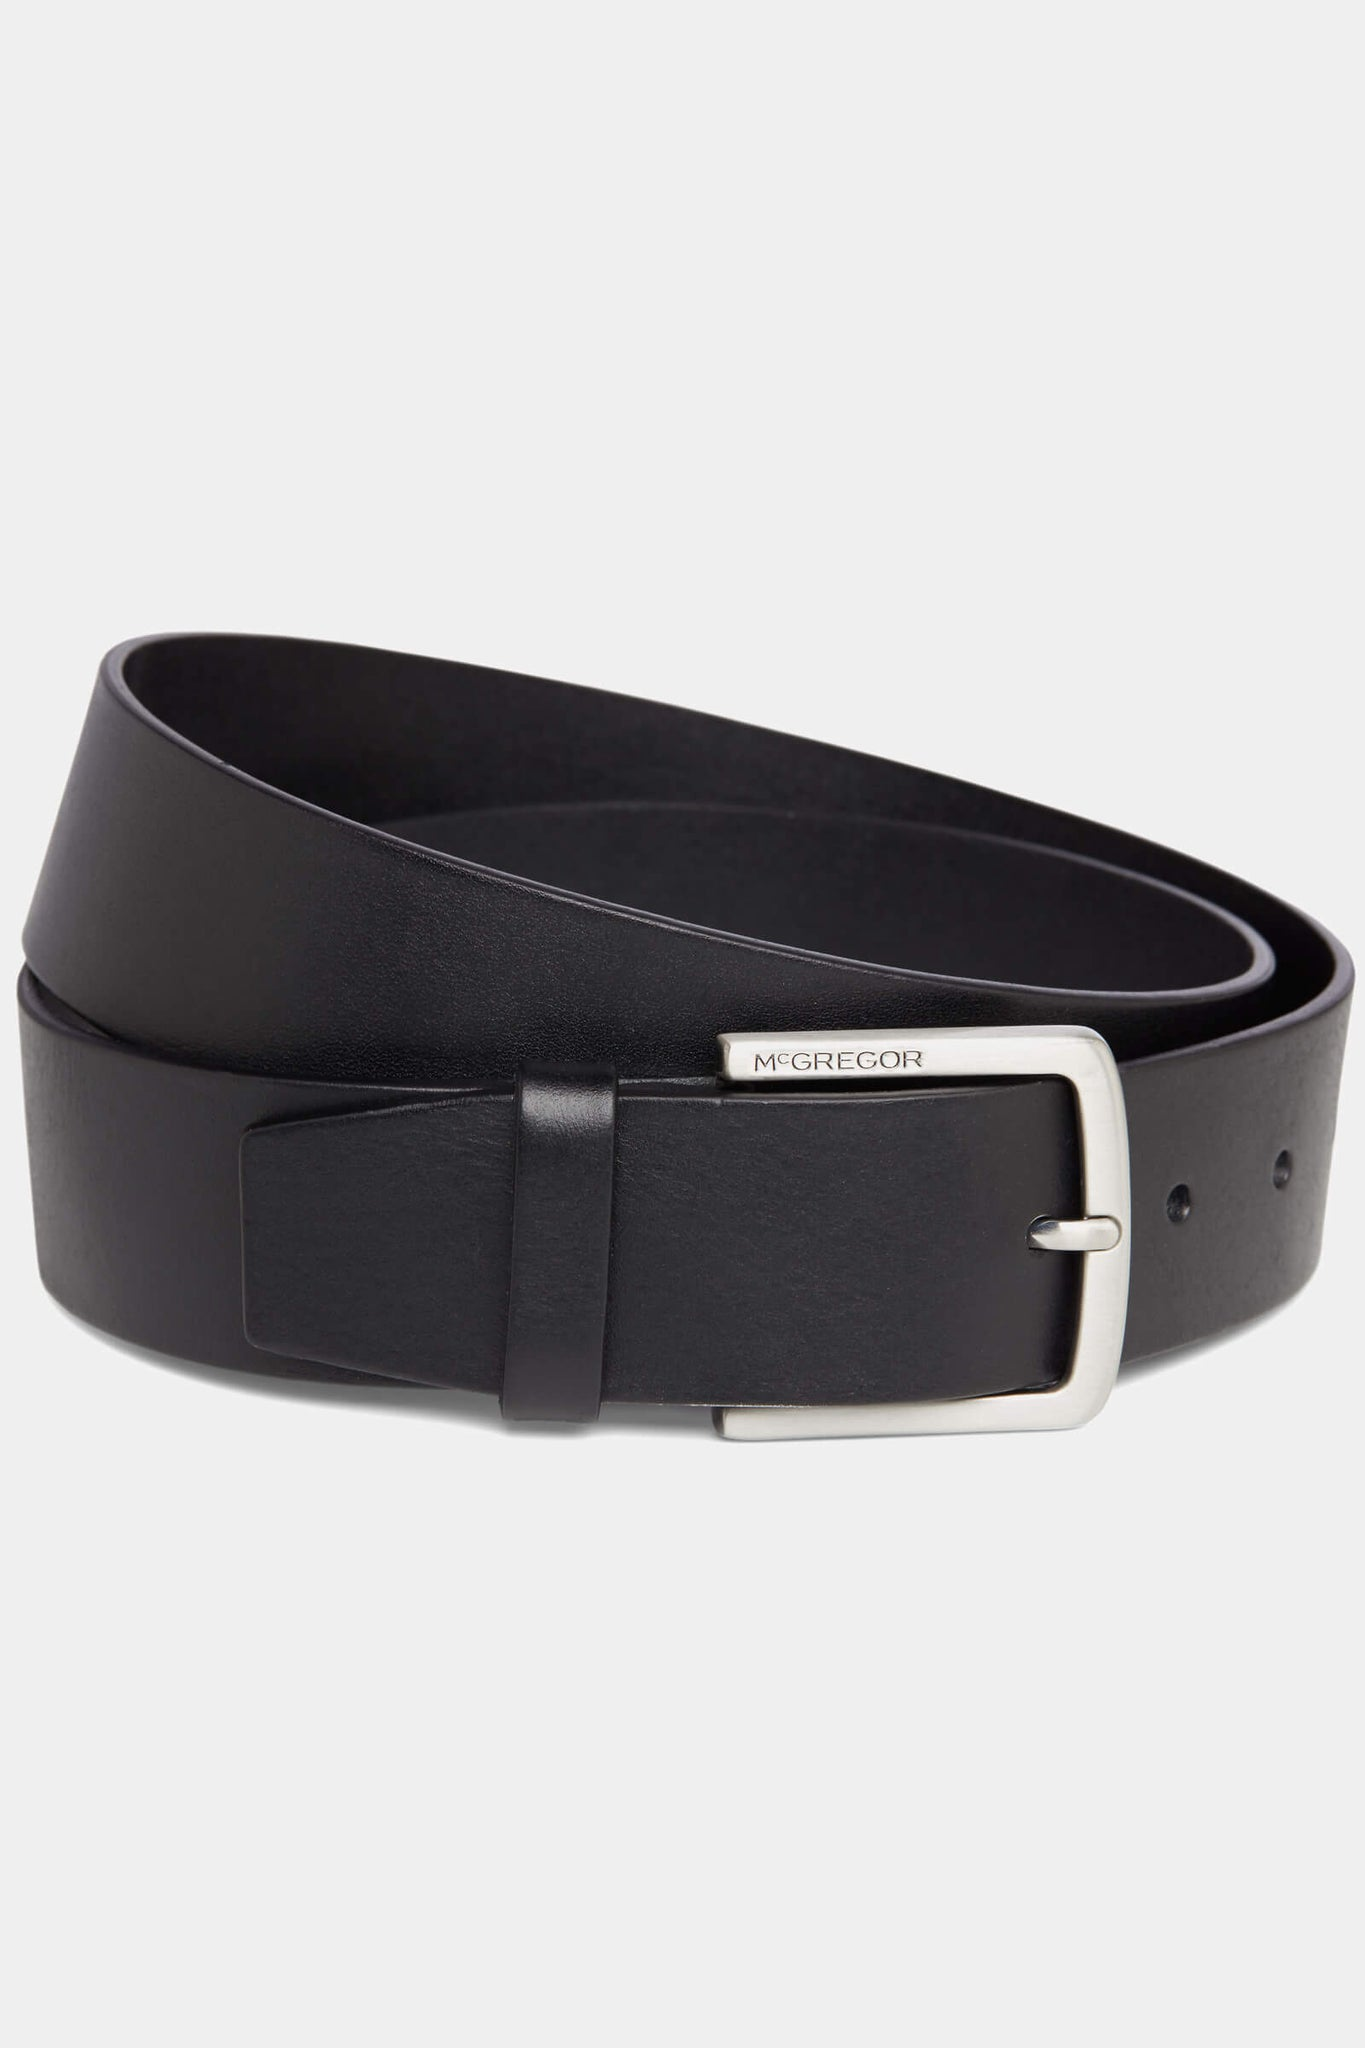 The McG Leather Belt